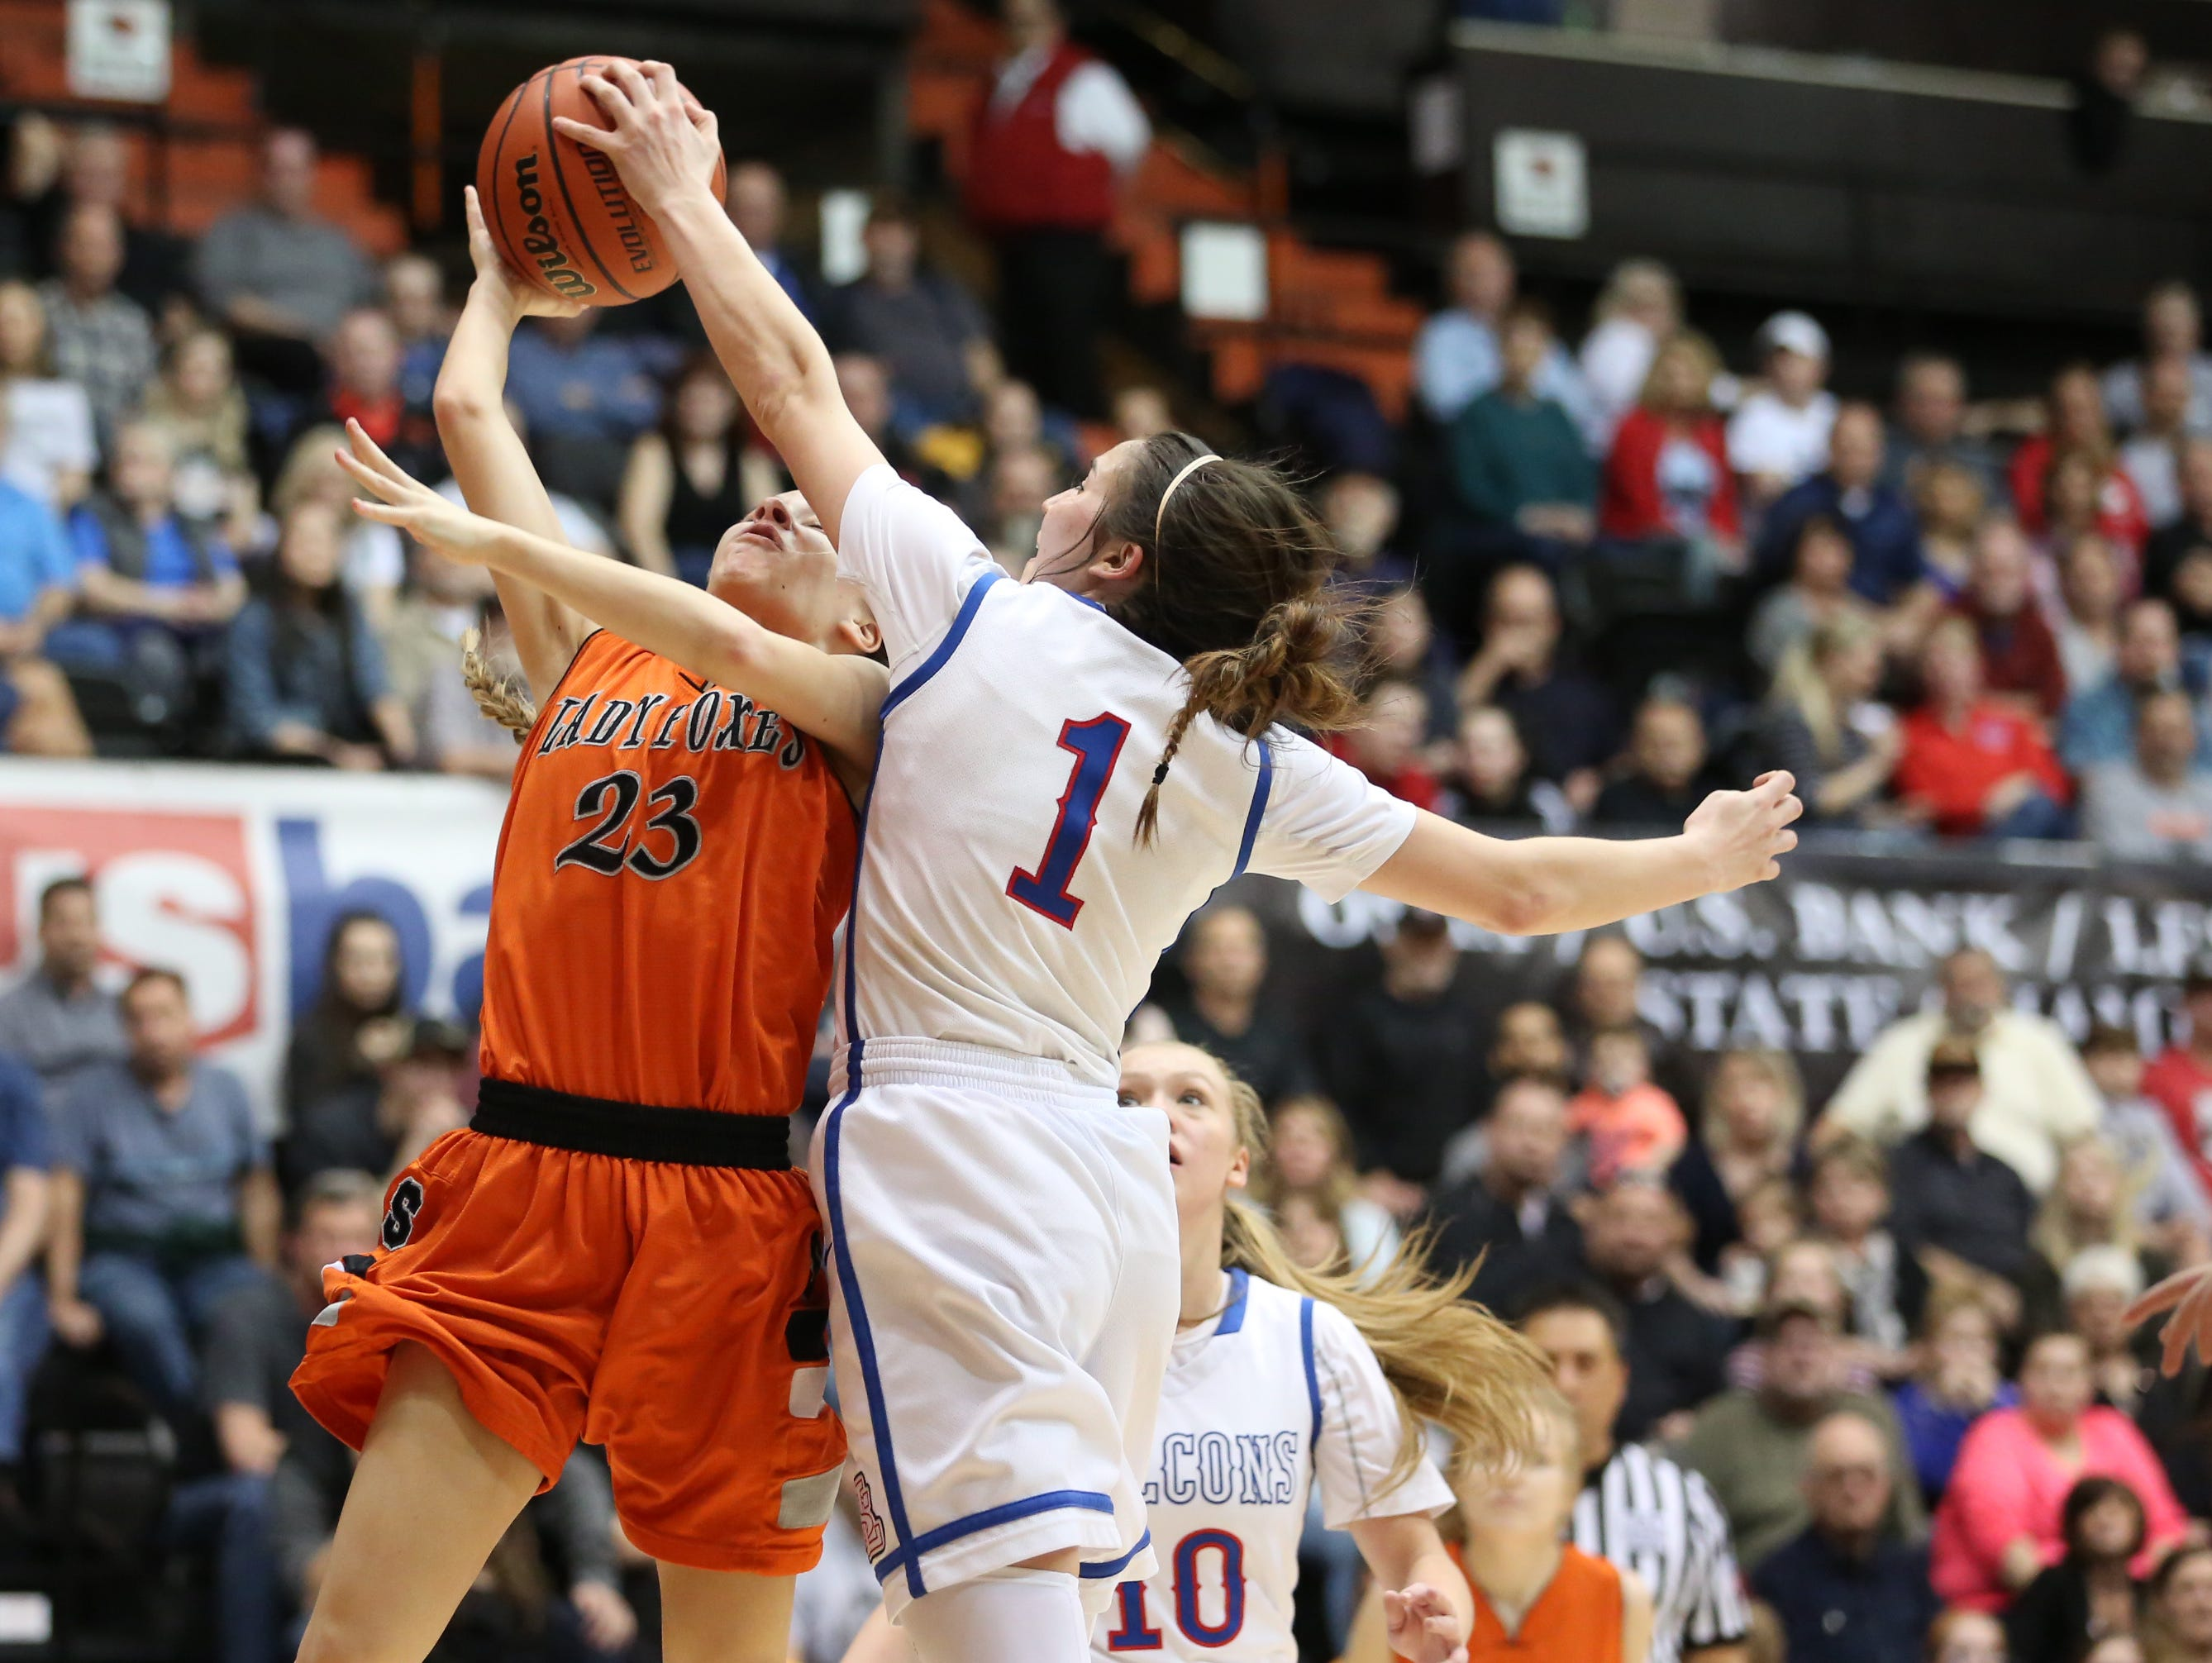 Silverton's Paige Alexander and La Salle's Aleah Goodman battle for the ball as the Foxes fall to La Salle 42-28 in the OSAA Class 5A state championship on Friday, March 10, 2017, at Gill Coliseum in Corvallis.